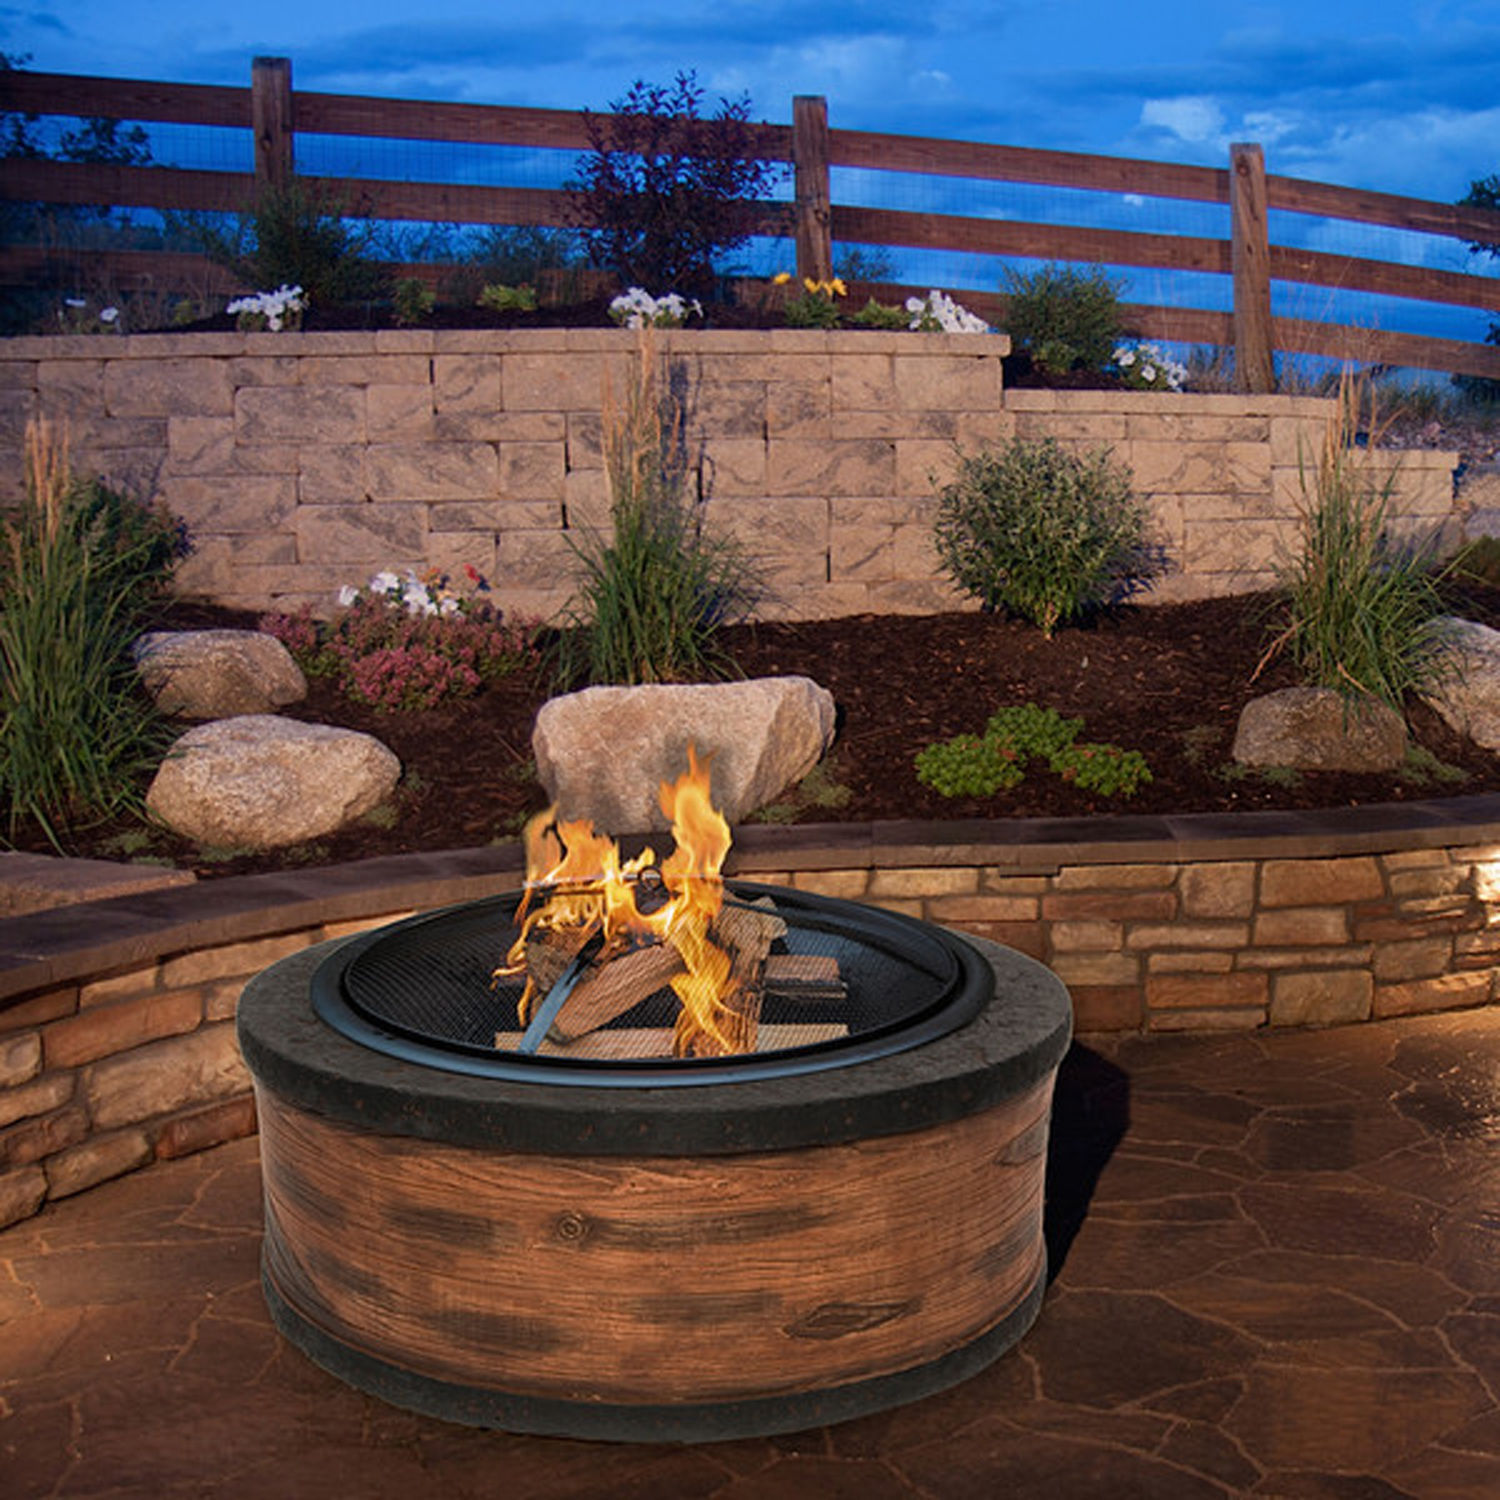 Round Fire Pit Wood Burning Fireplace Outdoor Patio Garden